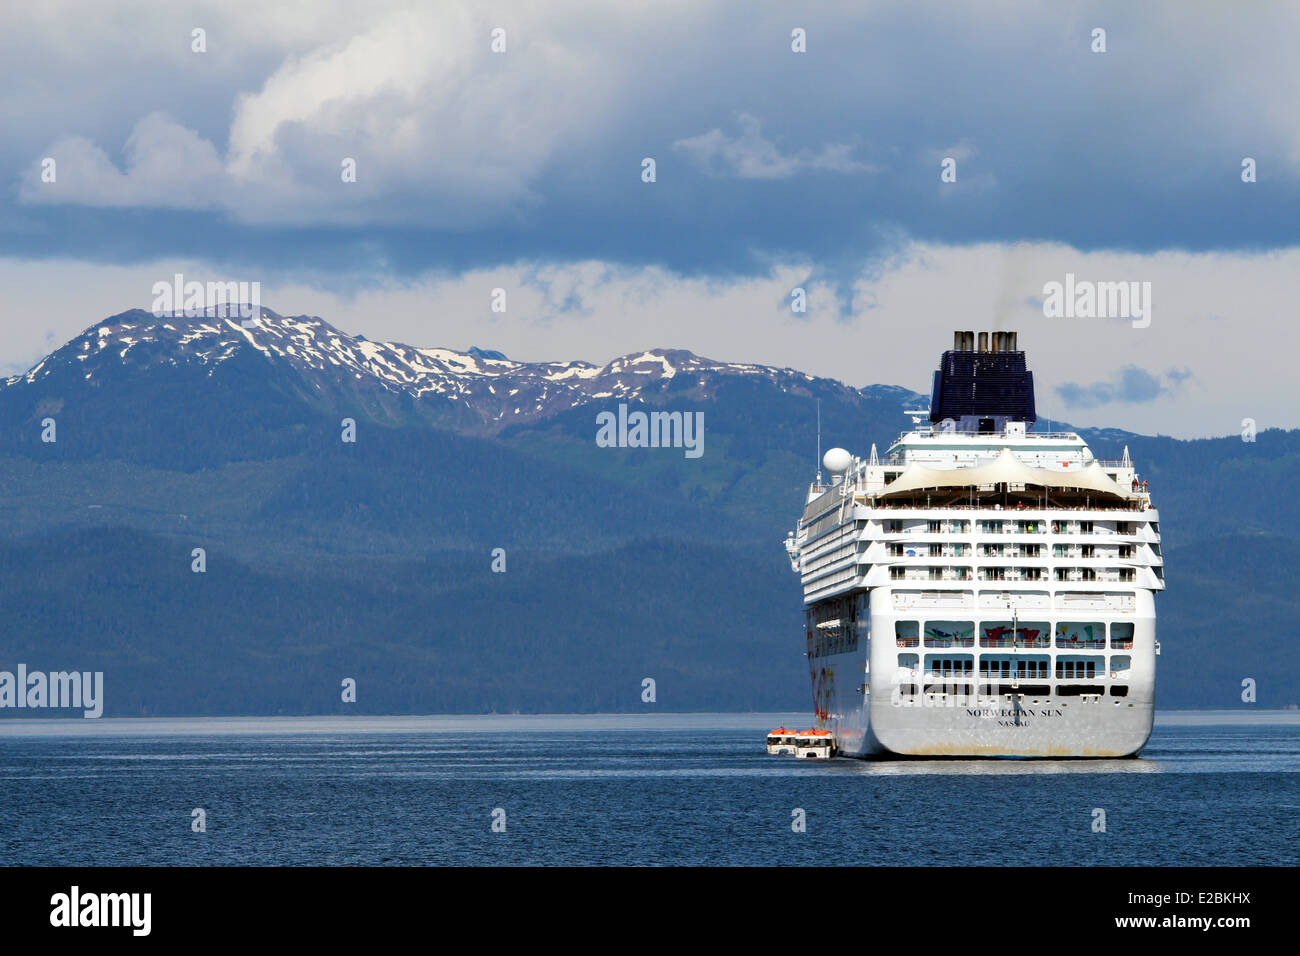 Cruise ship anchored outside Icy Strait Point Alaska snow capped mountains in the background. - Stock Image